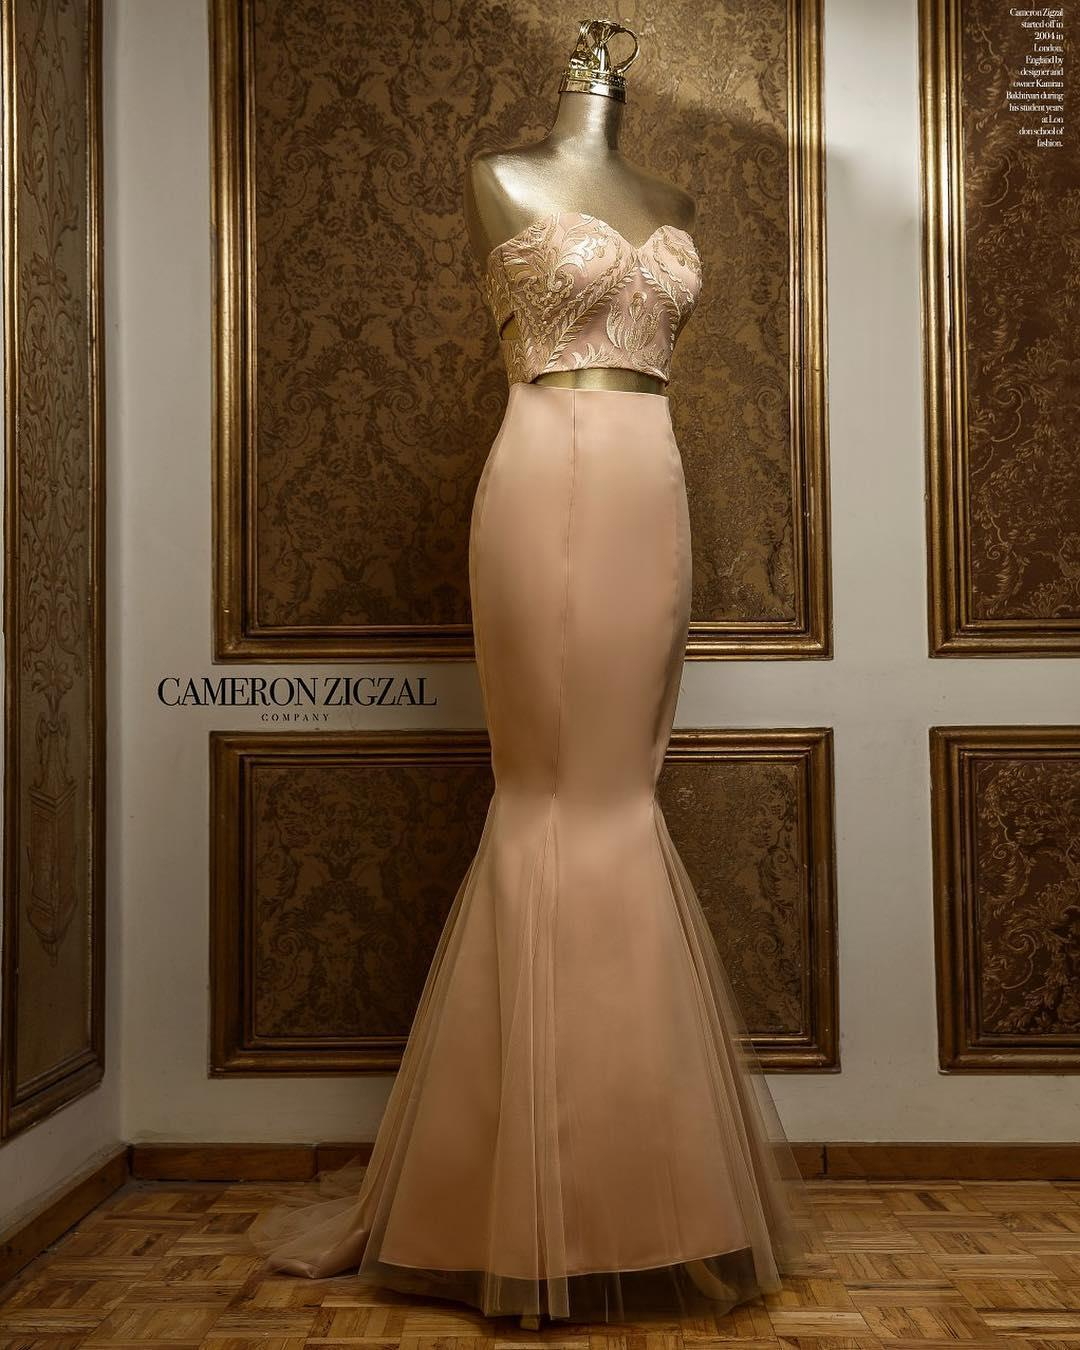 Cameronzigzal's night dres